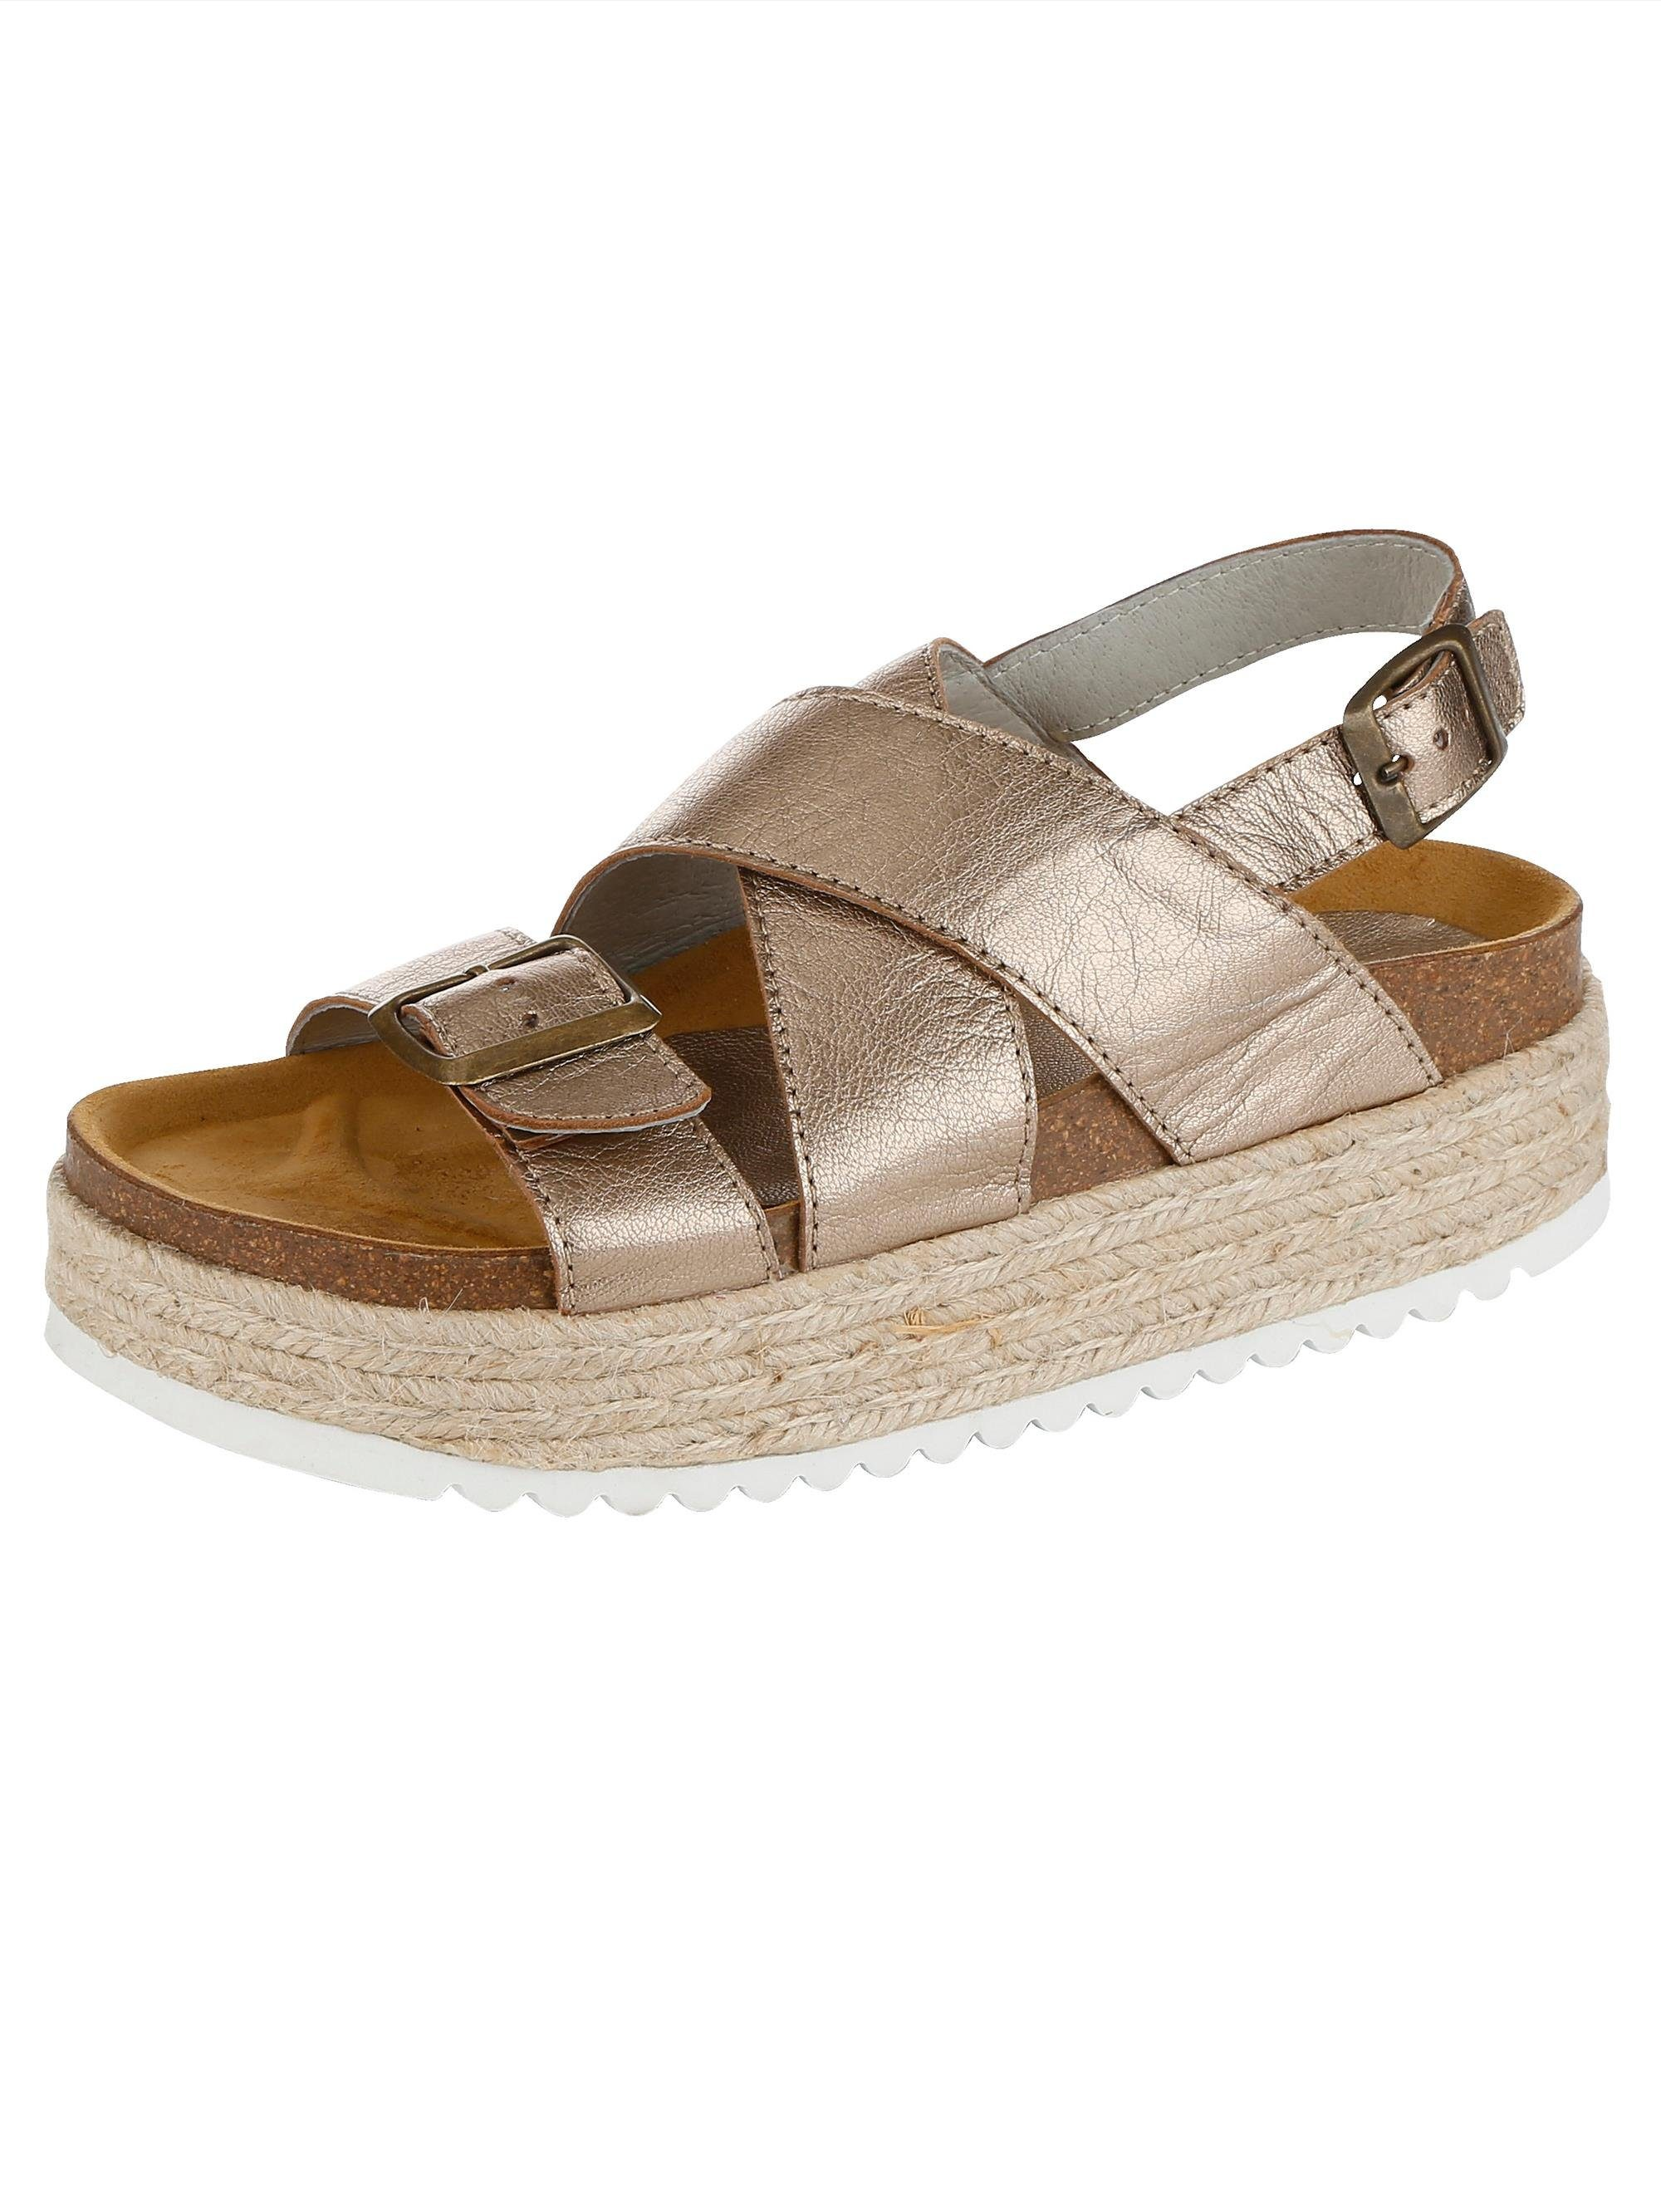 Alba Moda Sandalette in Metallic-Optik kaufen  bronze